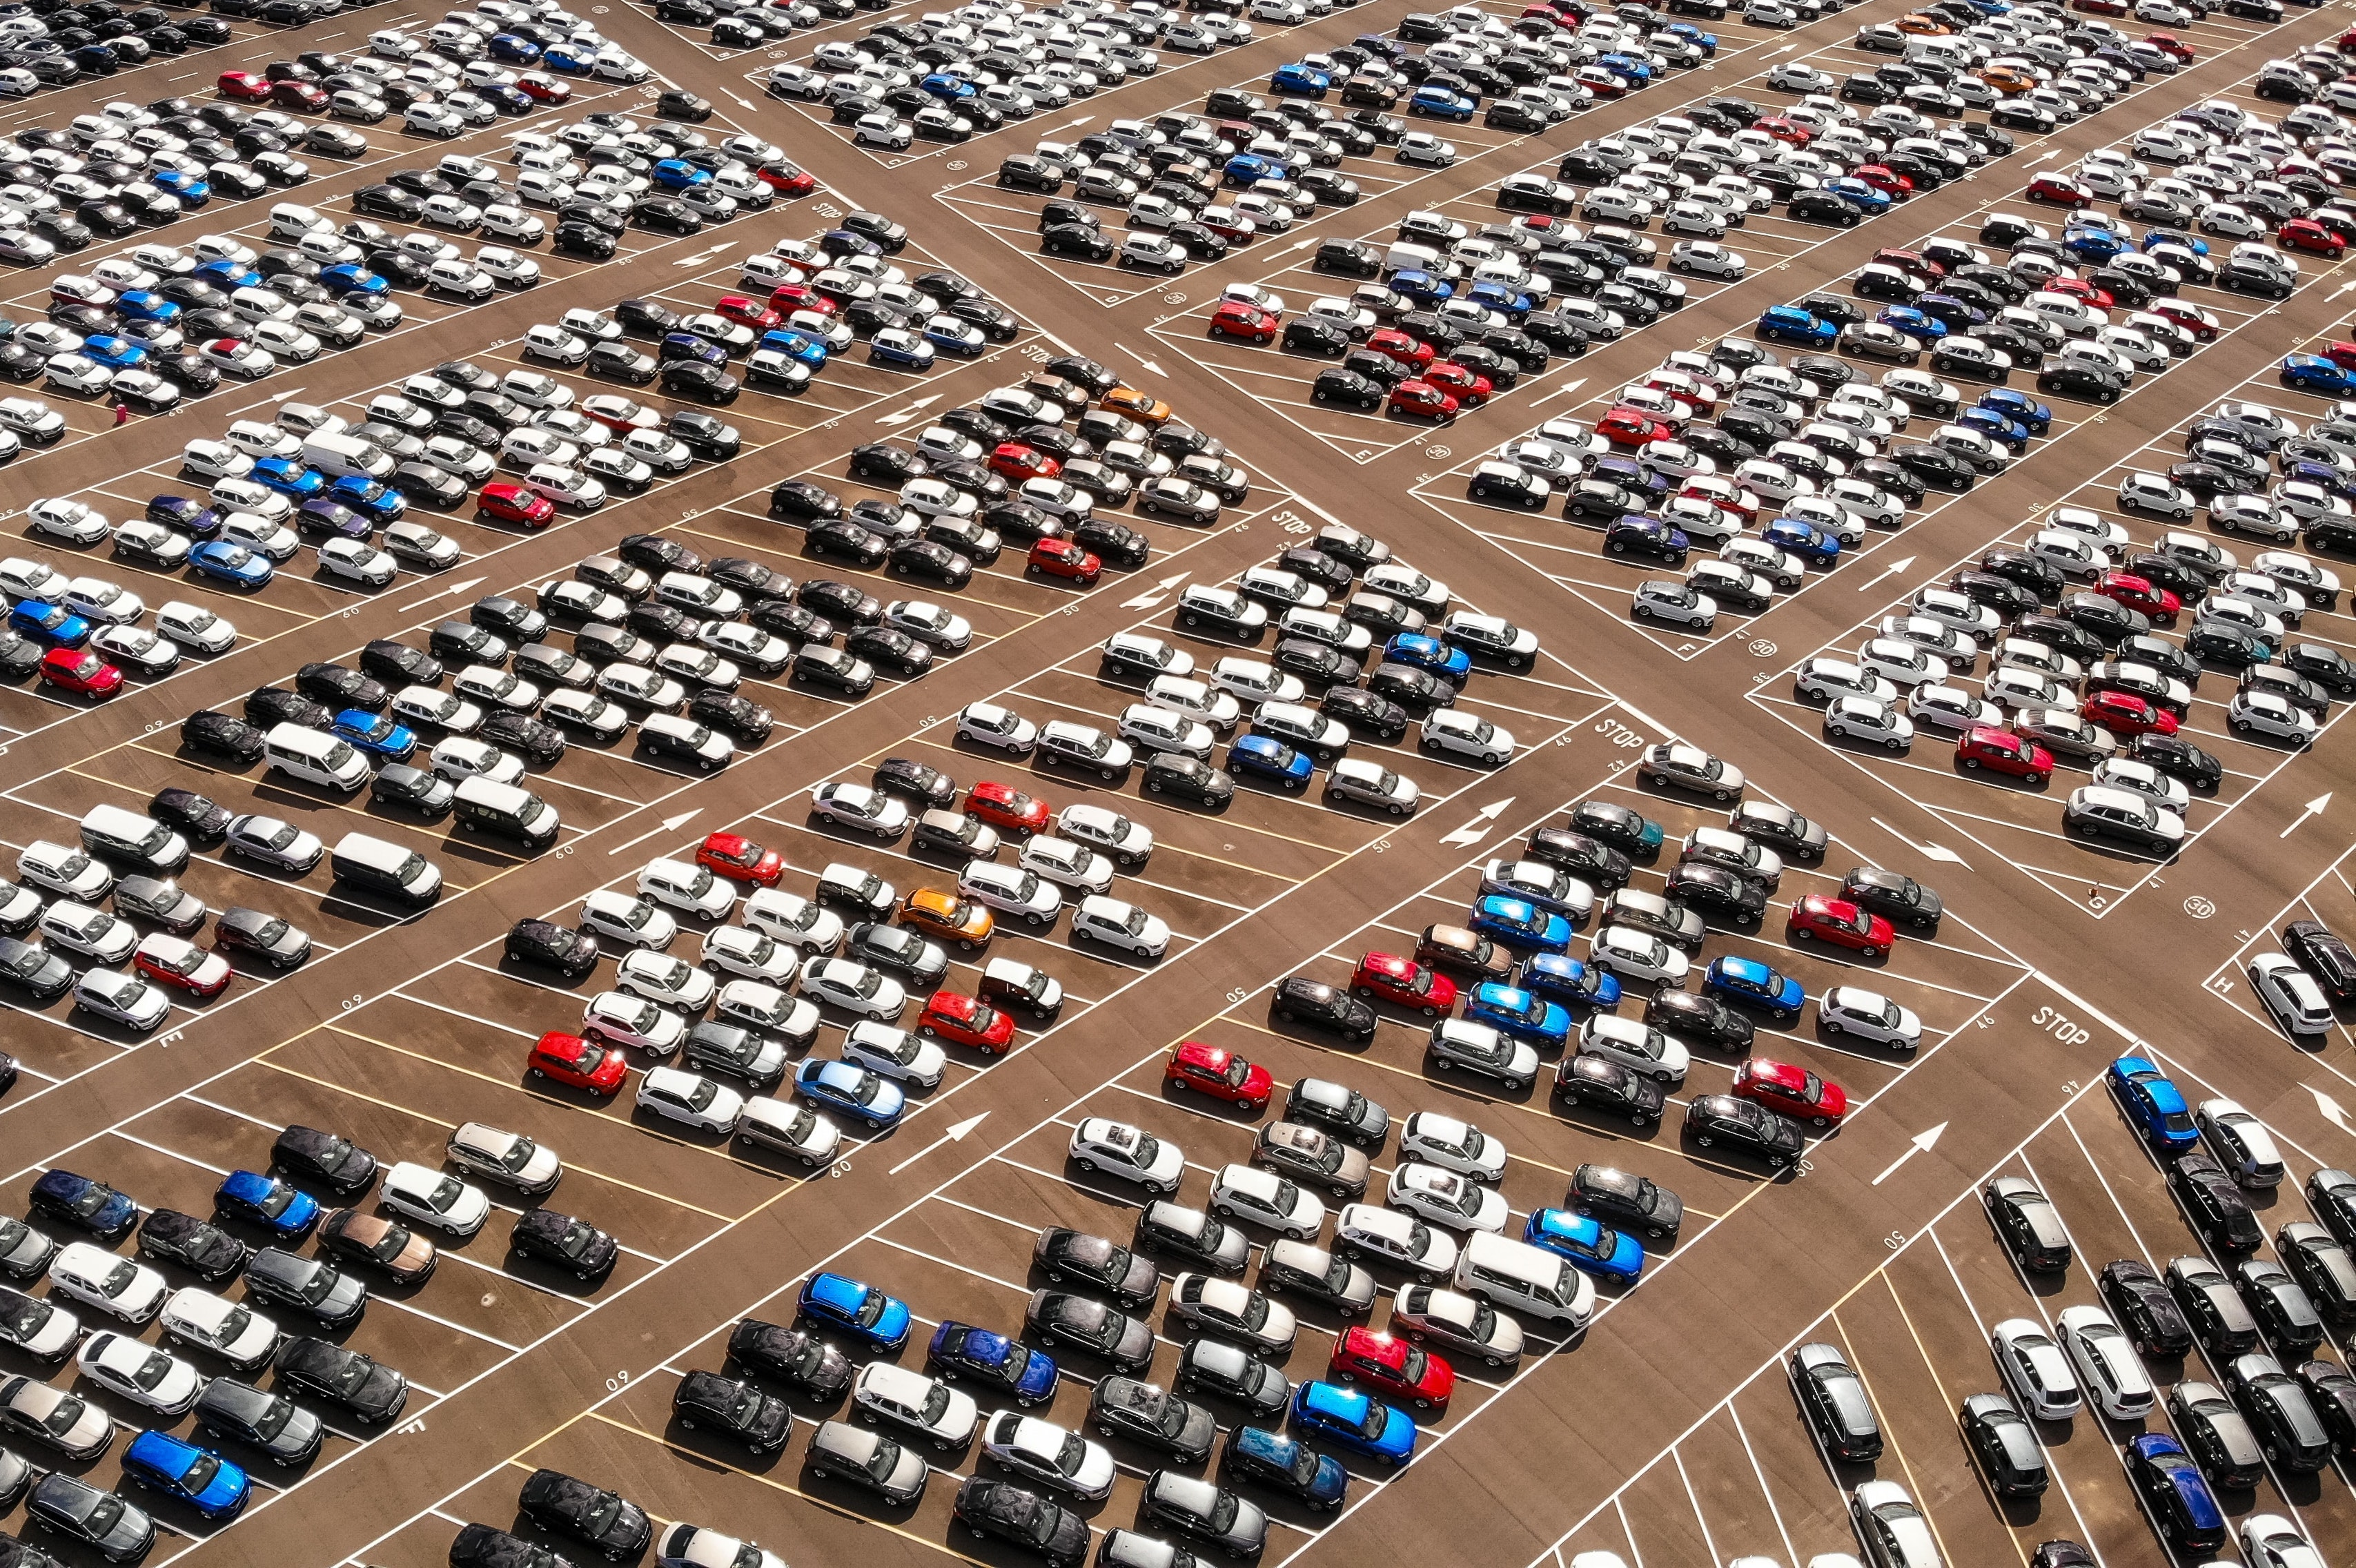 parking lot with cars